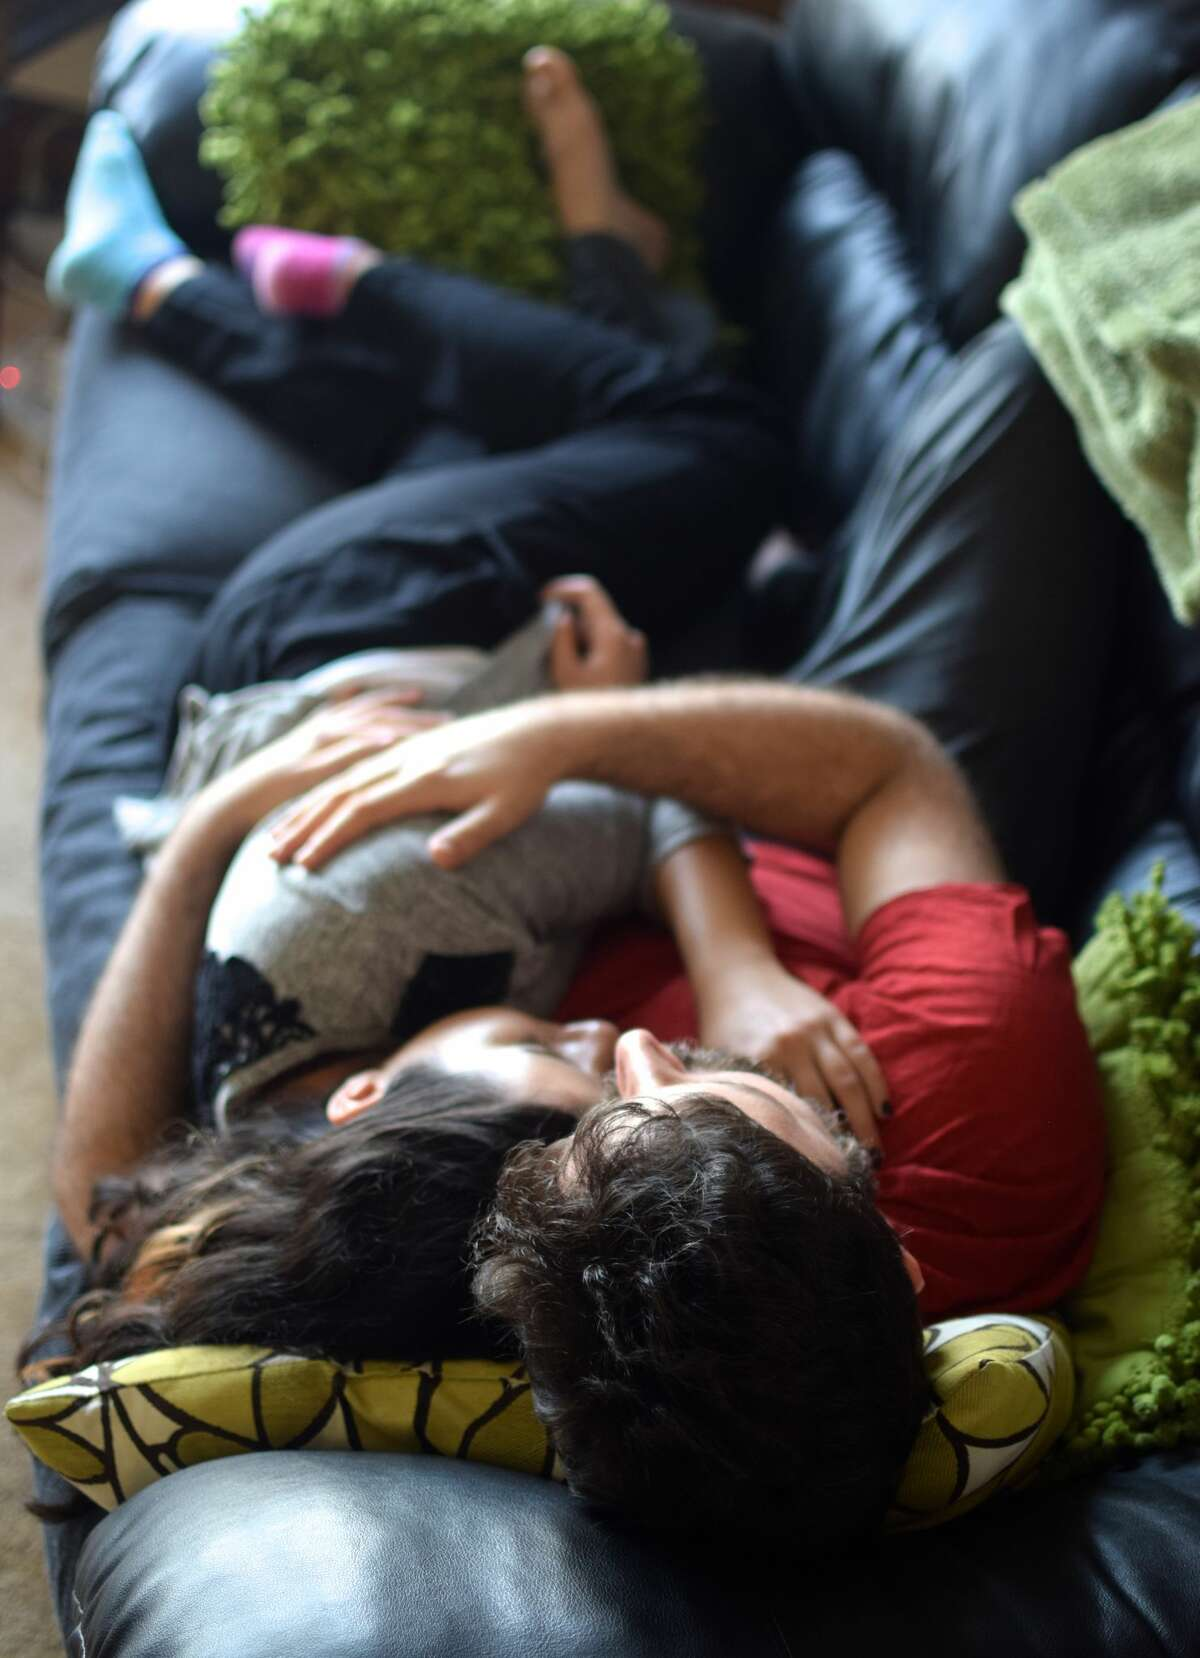 Yoni Alkan, a certified Cuddlist and a Cuddle Party facilitator, cuddles with a client.